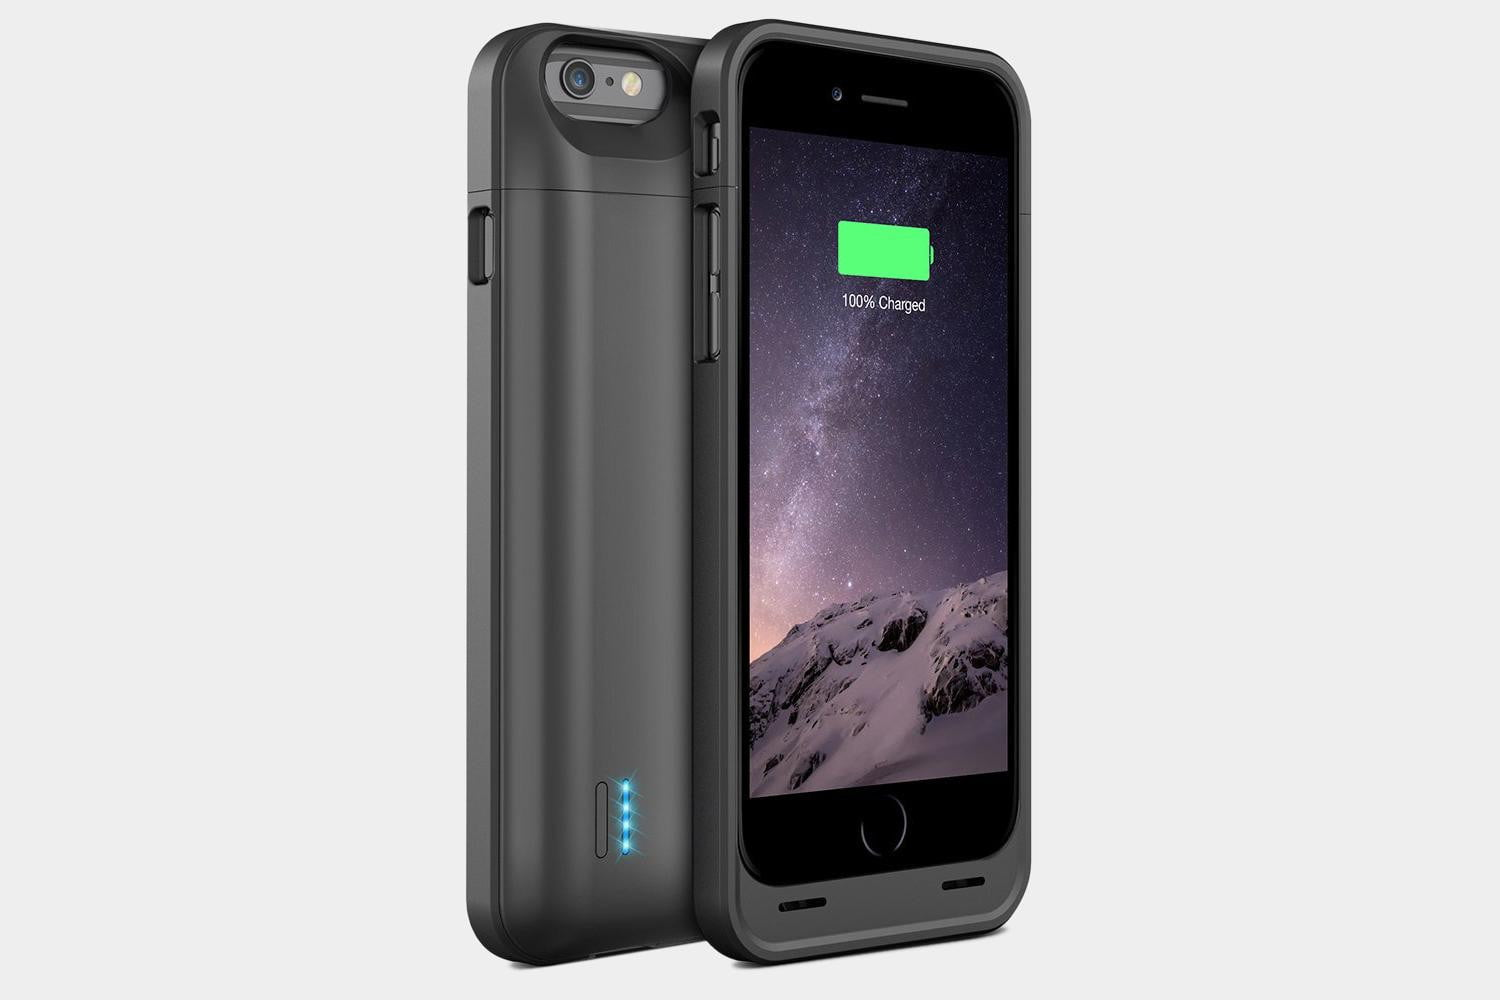 reputable site 28e95 3711d 10 Best iPhone 6 Battery Cases | Digital Trends